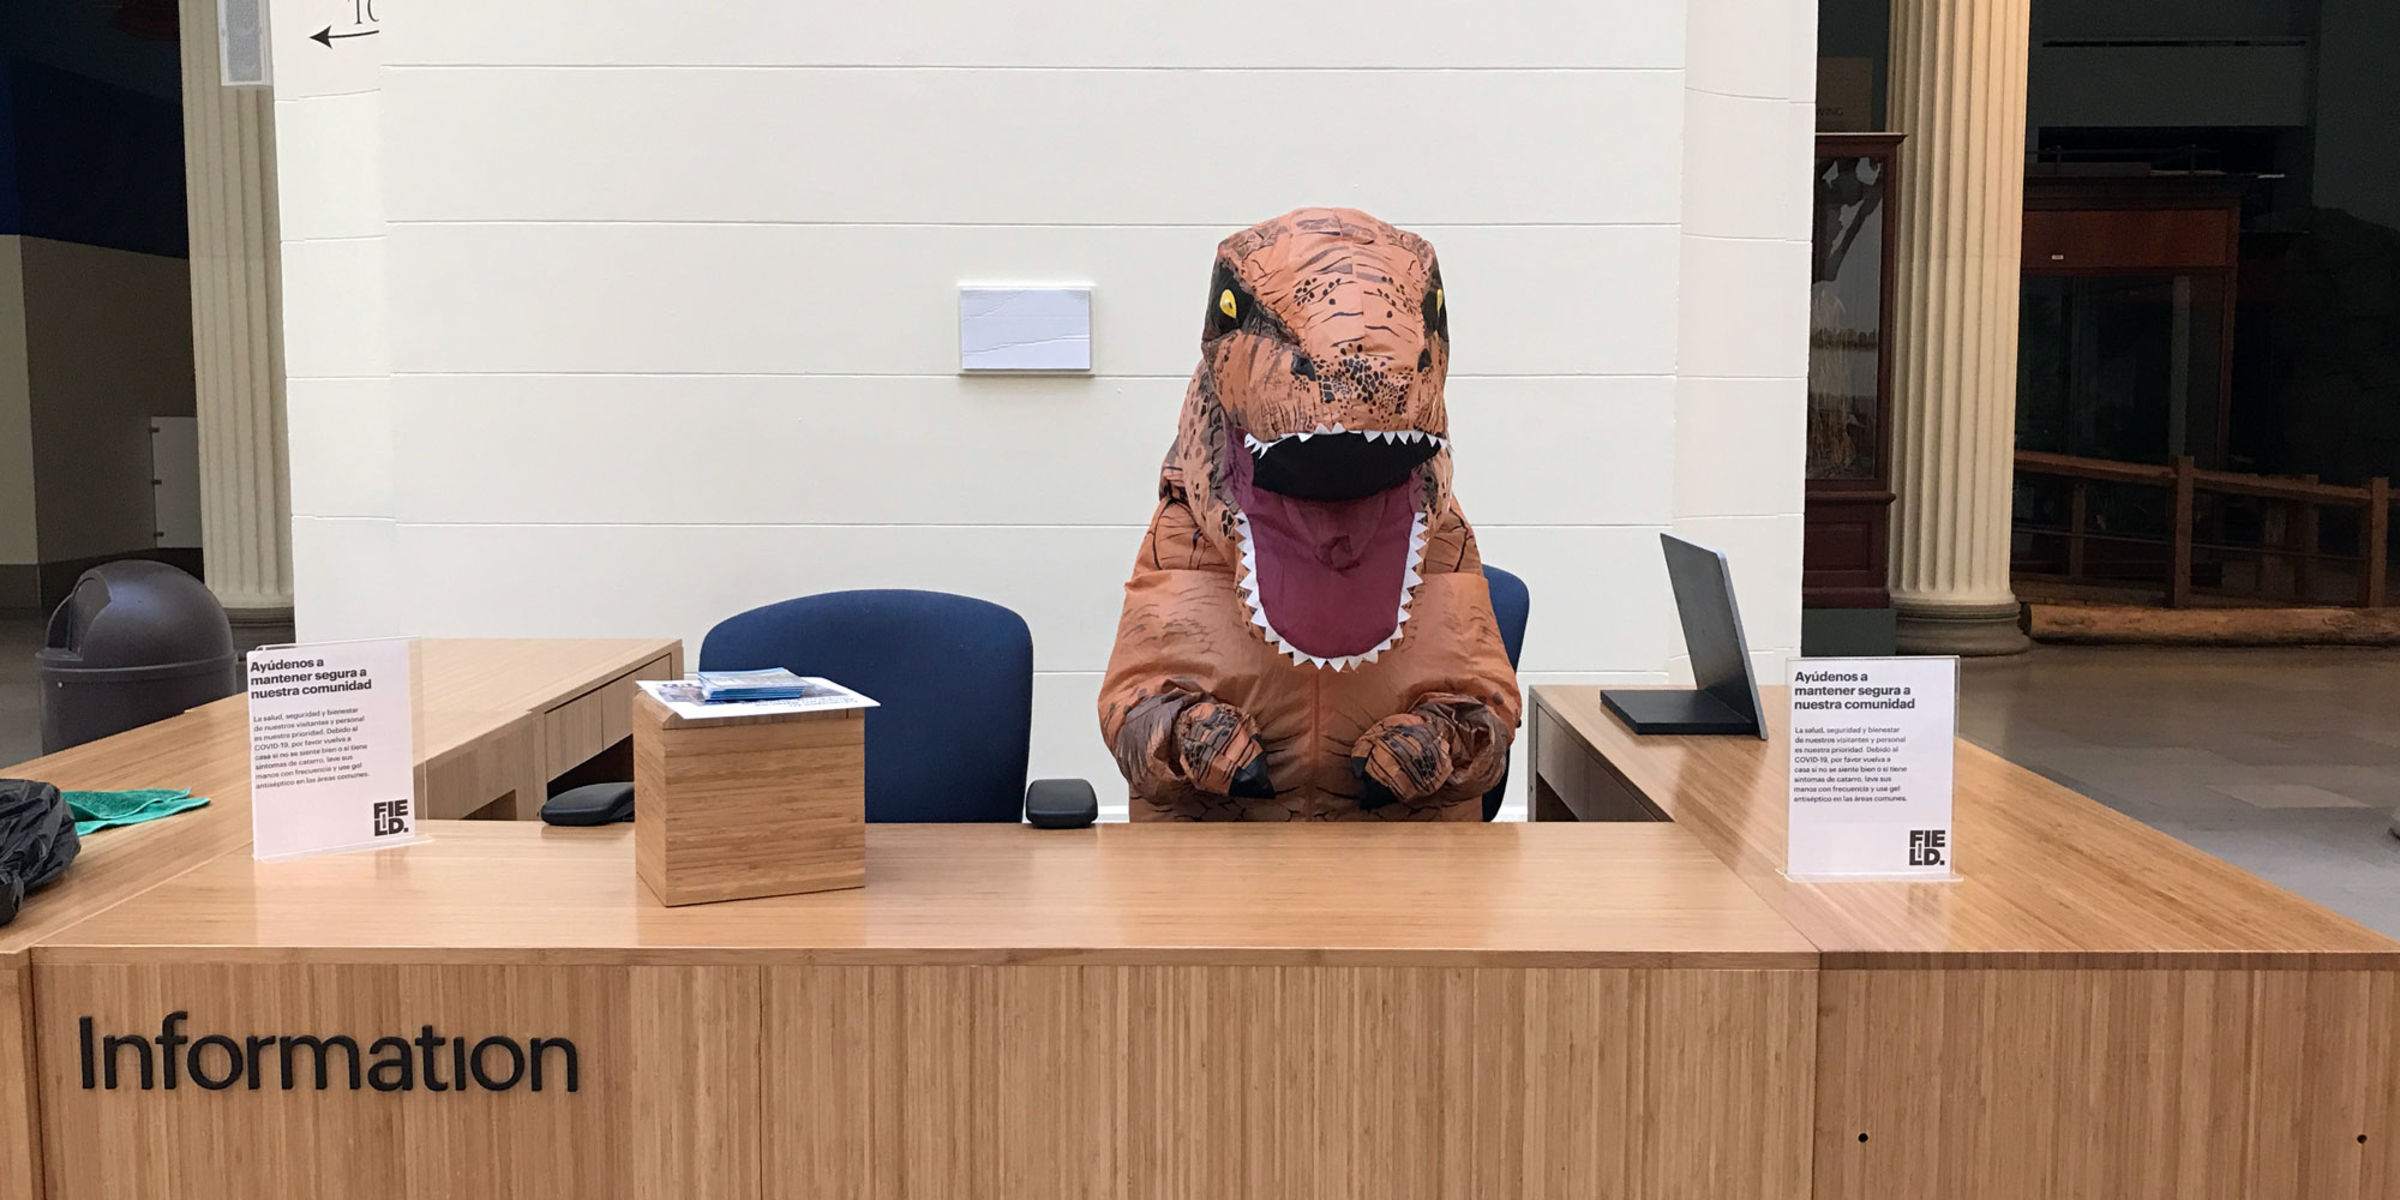 A person in an inflatable T. rex suit sits behind an information desk.